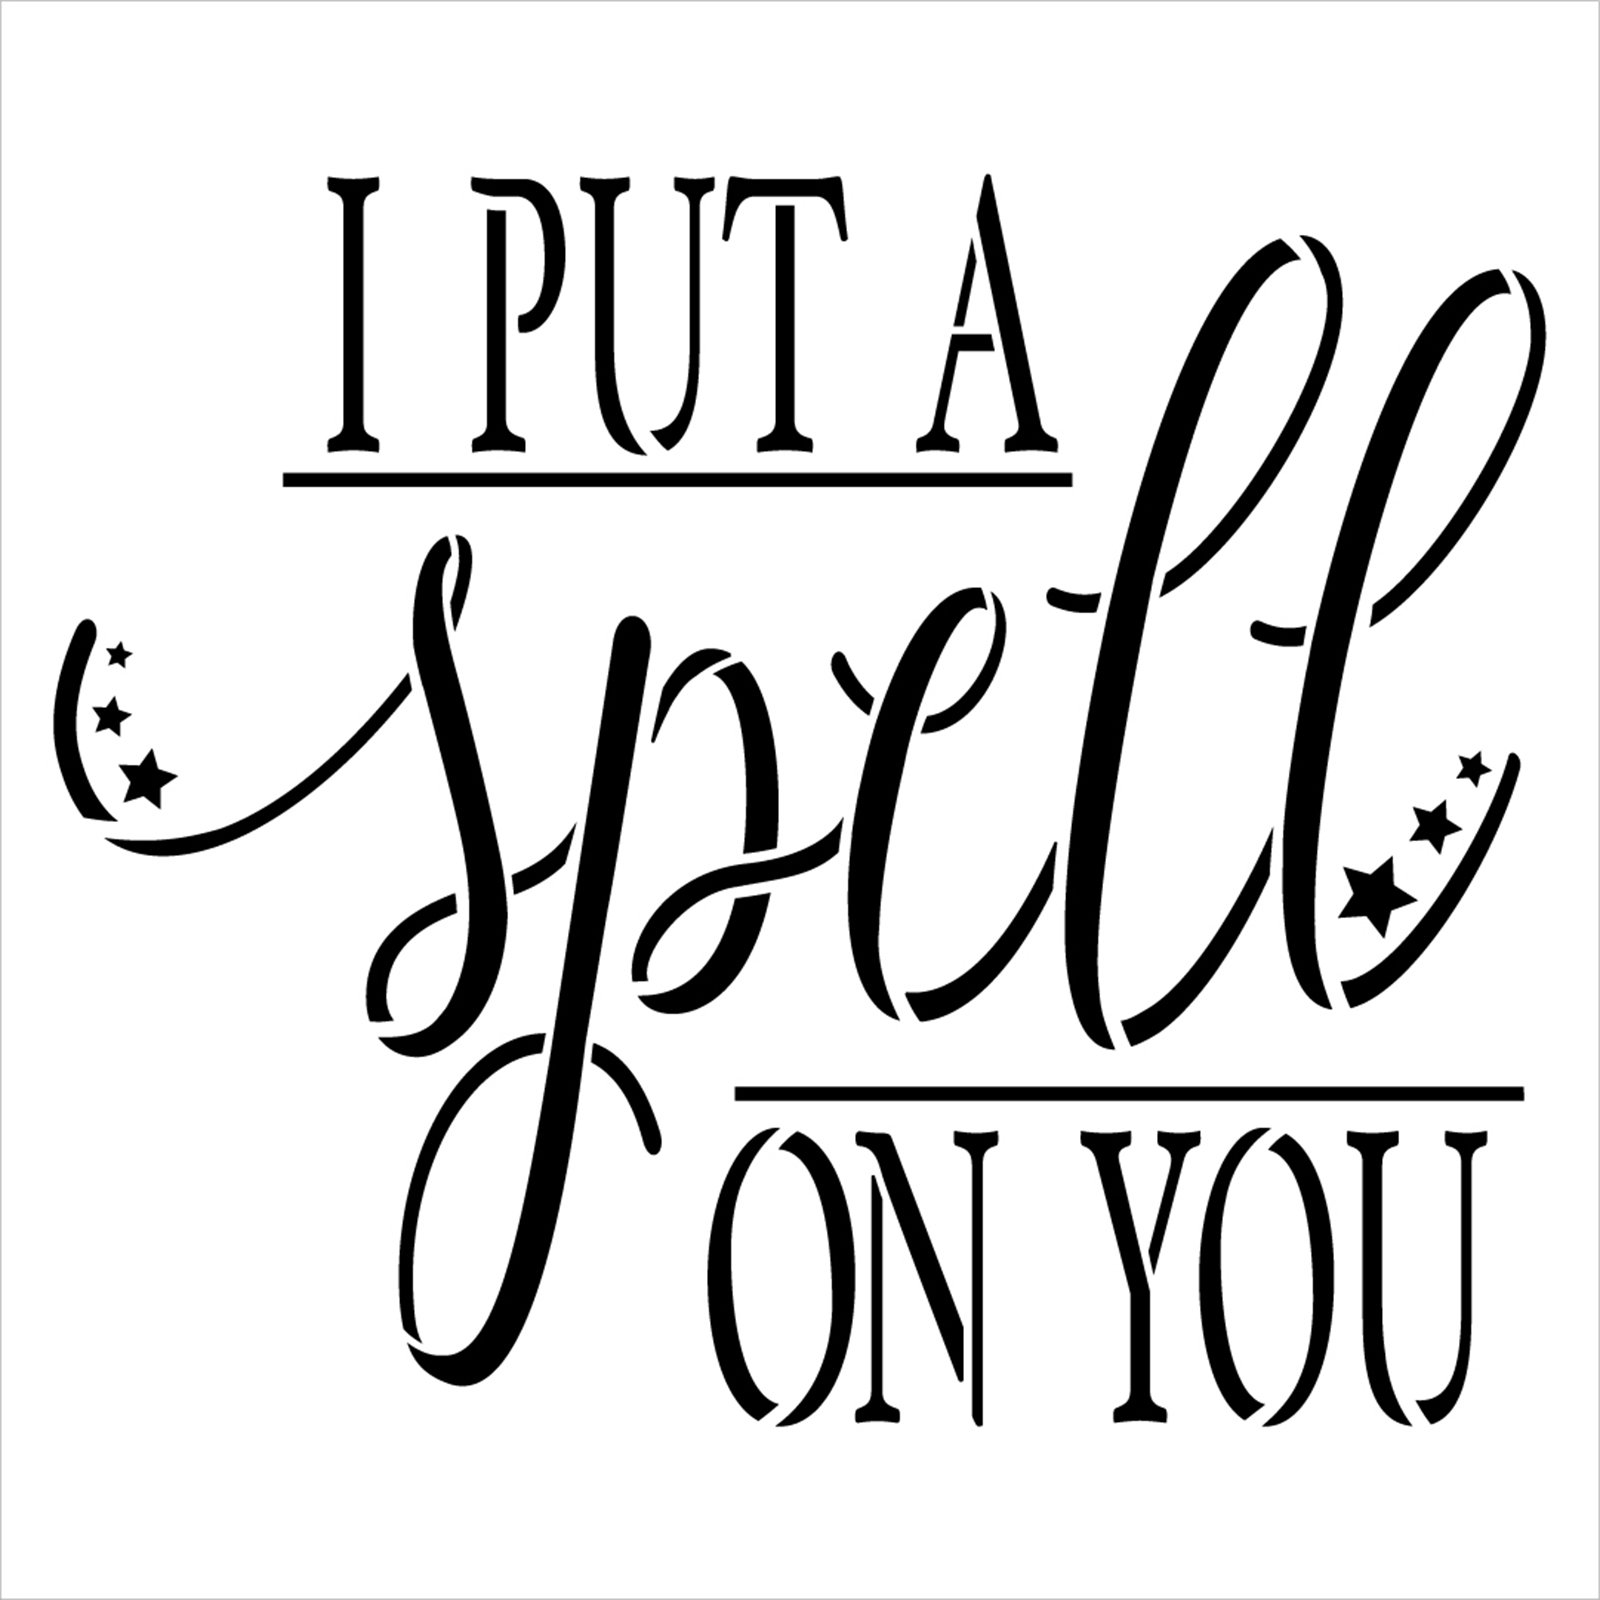 I Put A Spell On You Stencil by StudioR12 | Craft DIY Fall Halloween Home Decor | Paint Cursive Script Wood Sign | Reusable Template | Select Size